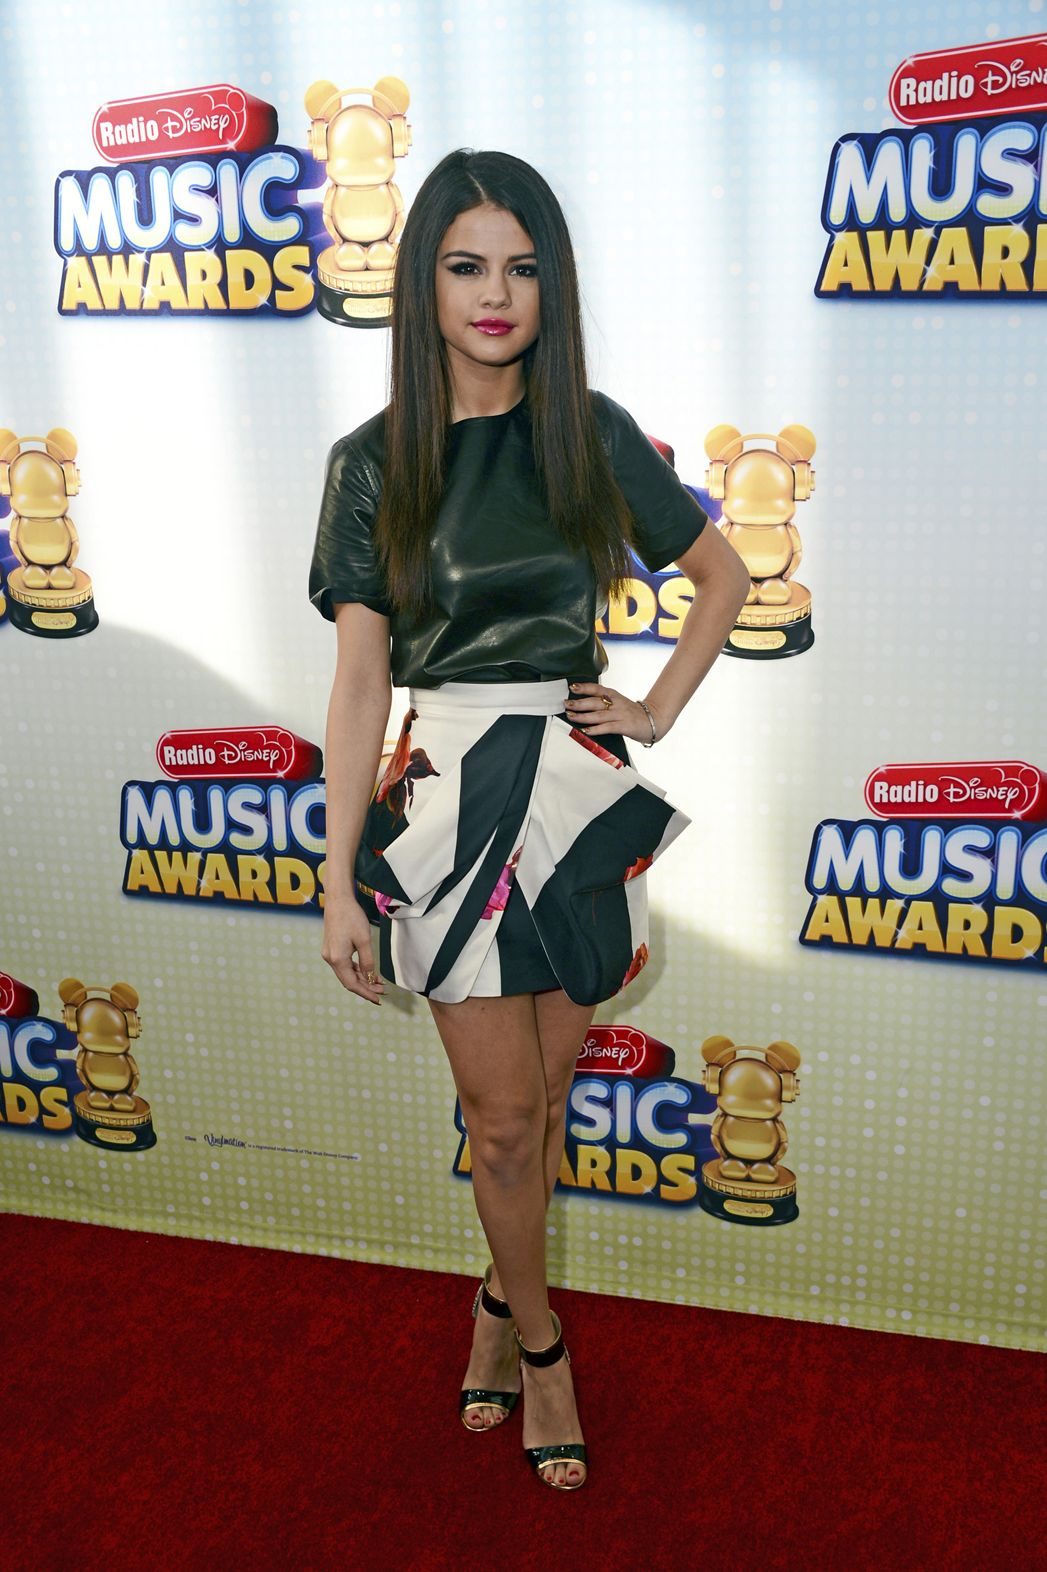 Disney music awards gomez radio selena